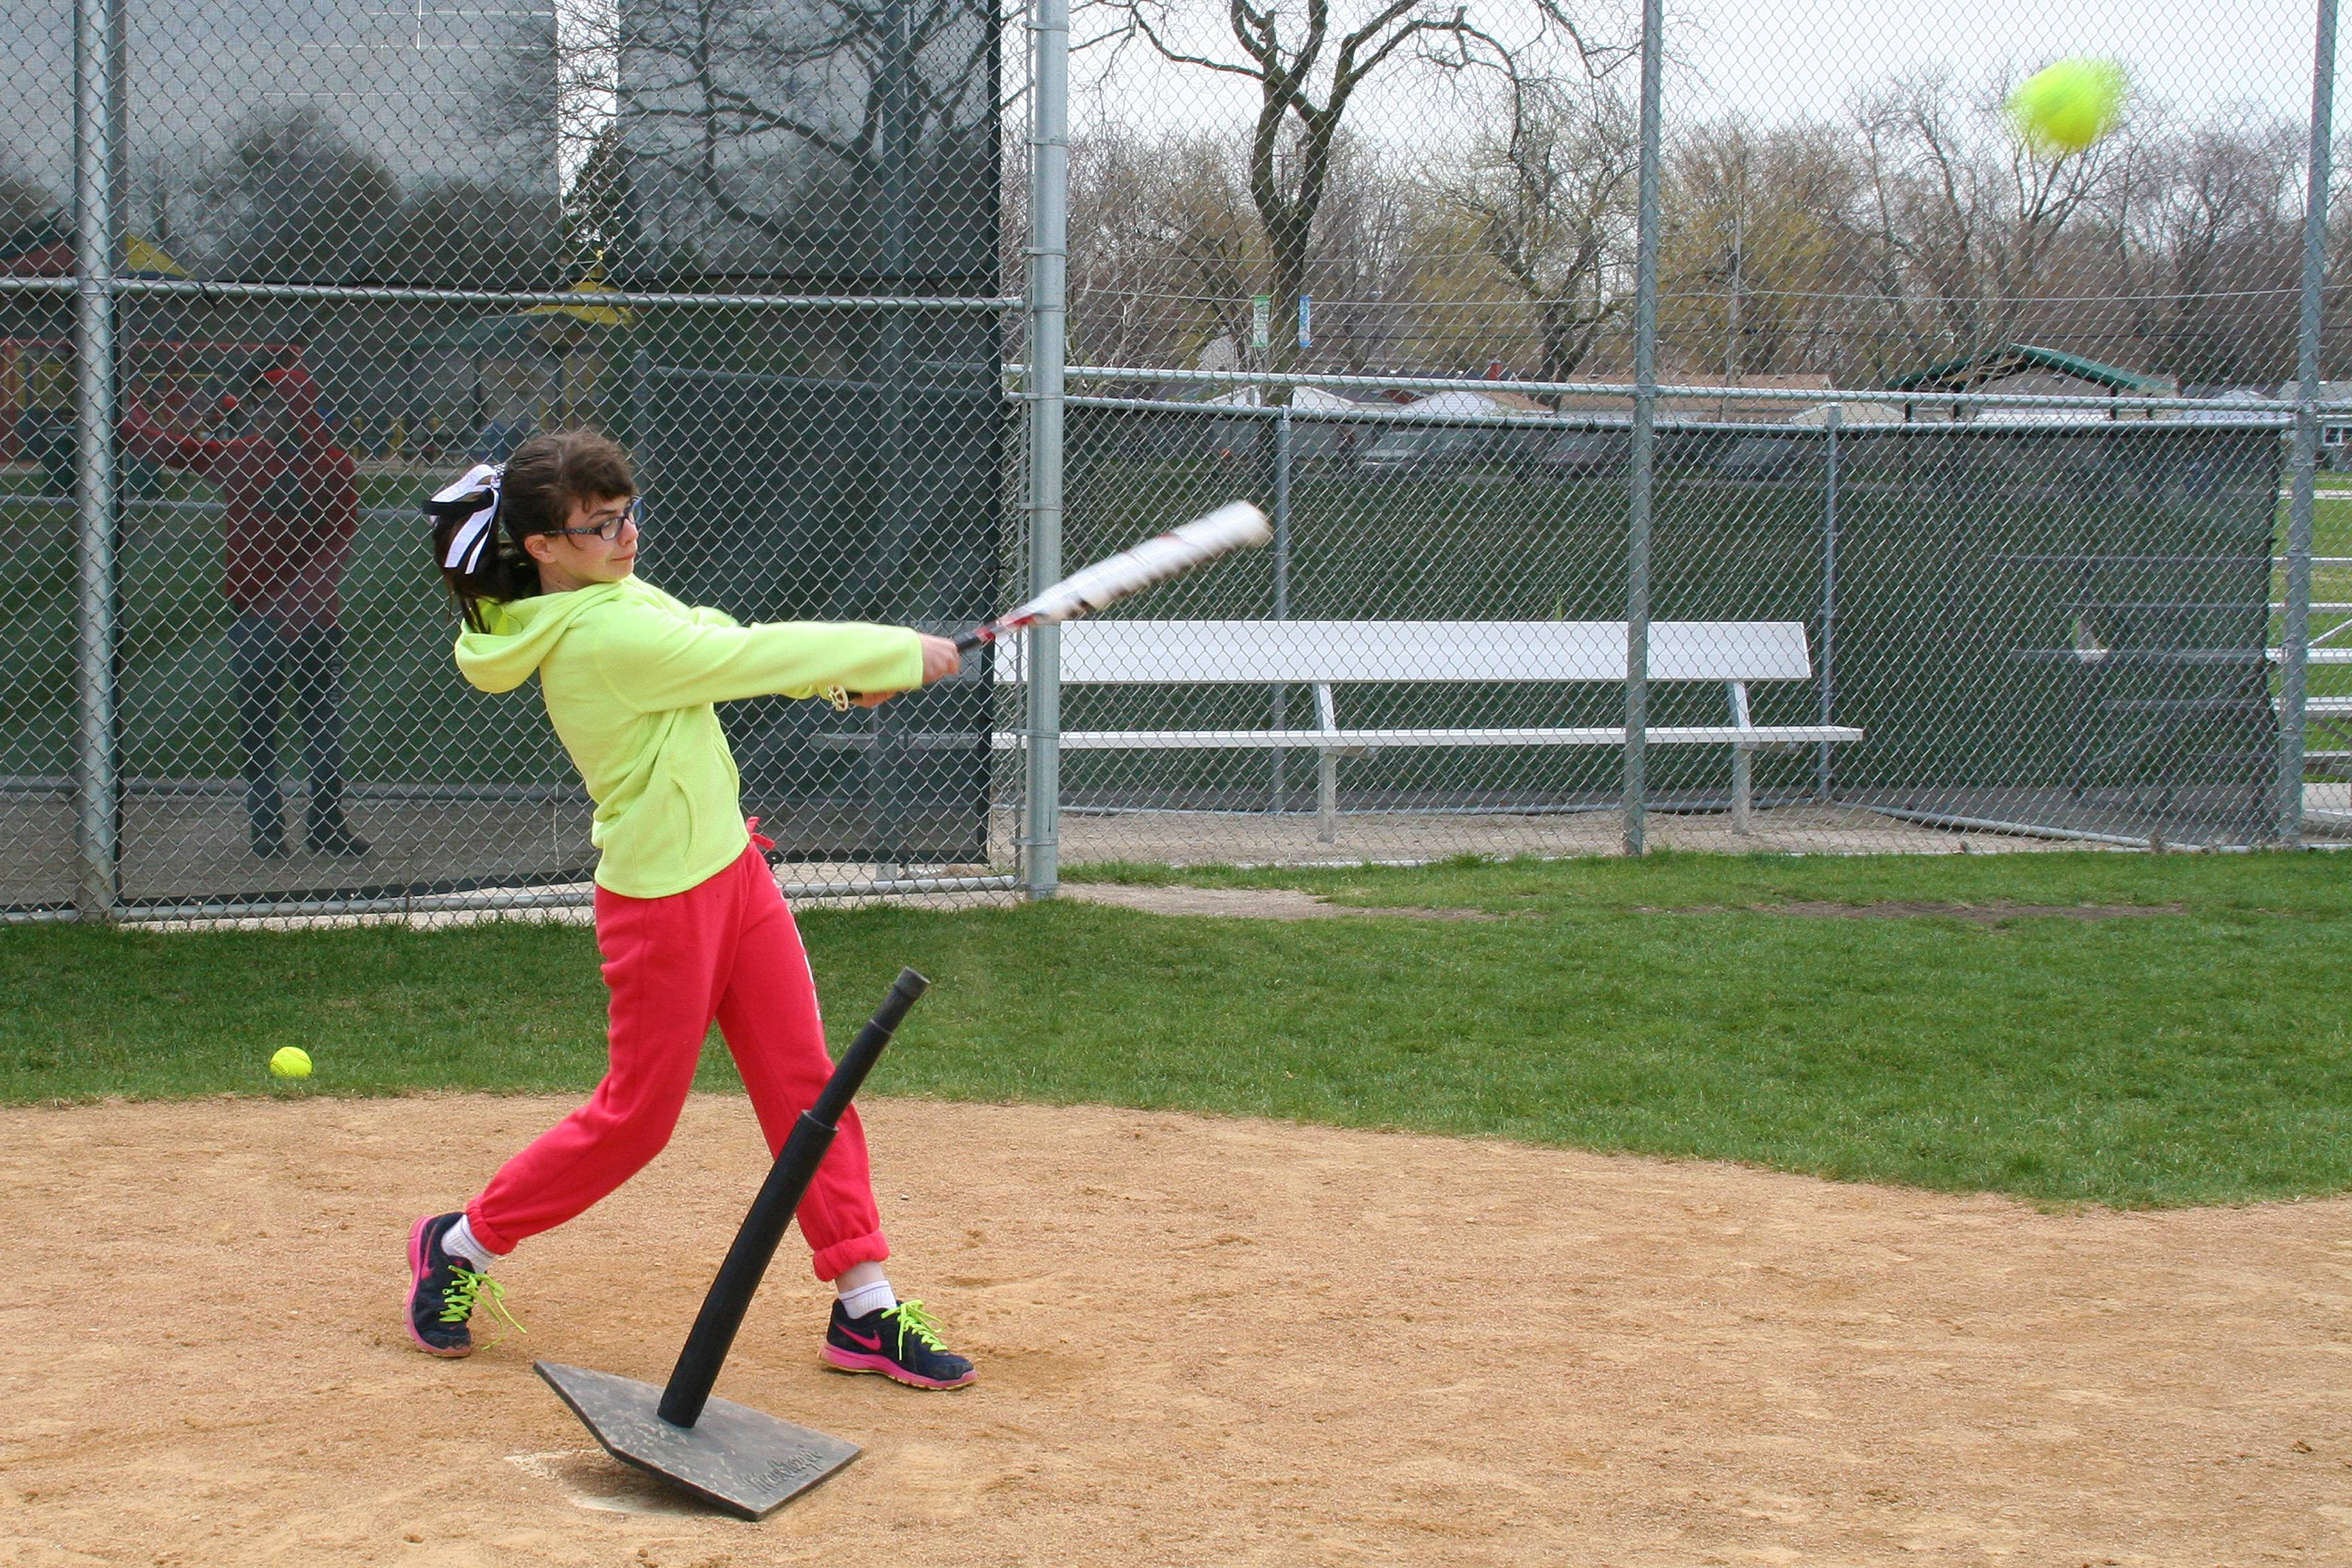 Annie Gaughan blasts one from home plate to become the Overall Champion in the Girls' 11/12 age group at the April 27 Pitch, Hit & Run Competition at West ParkLisa Haring